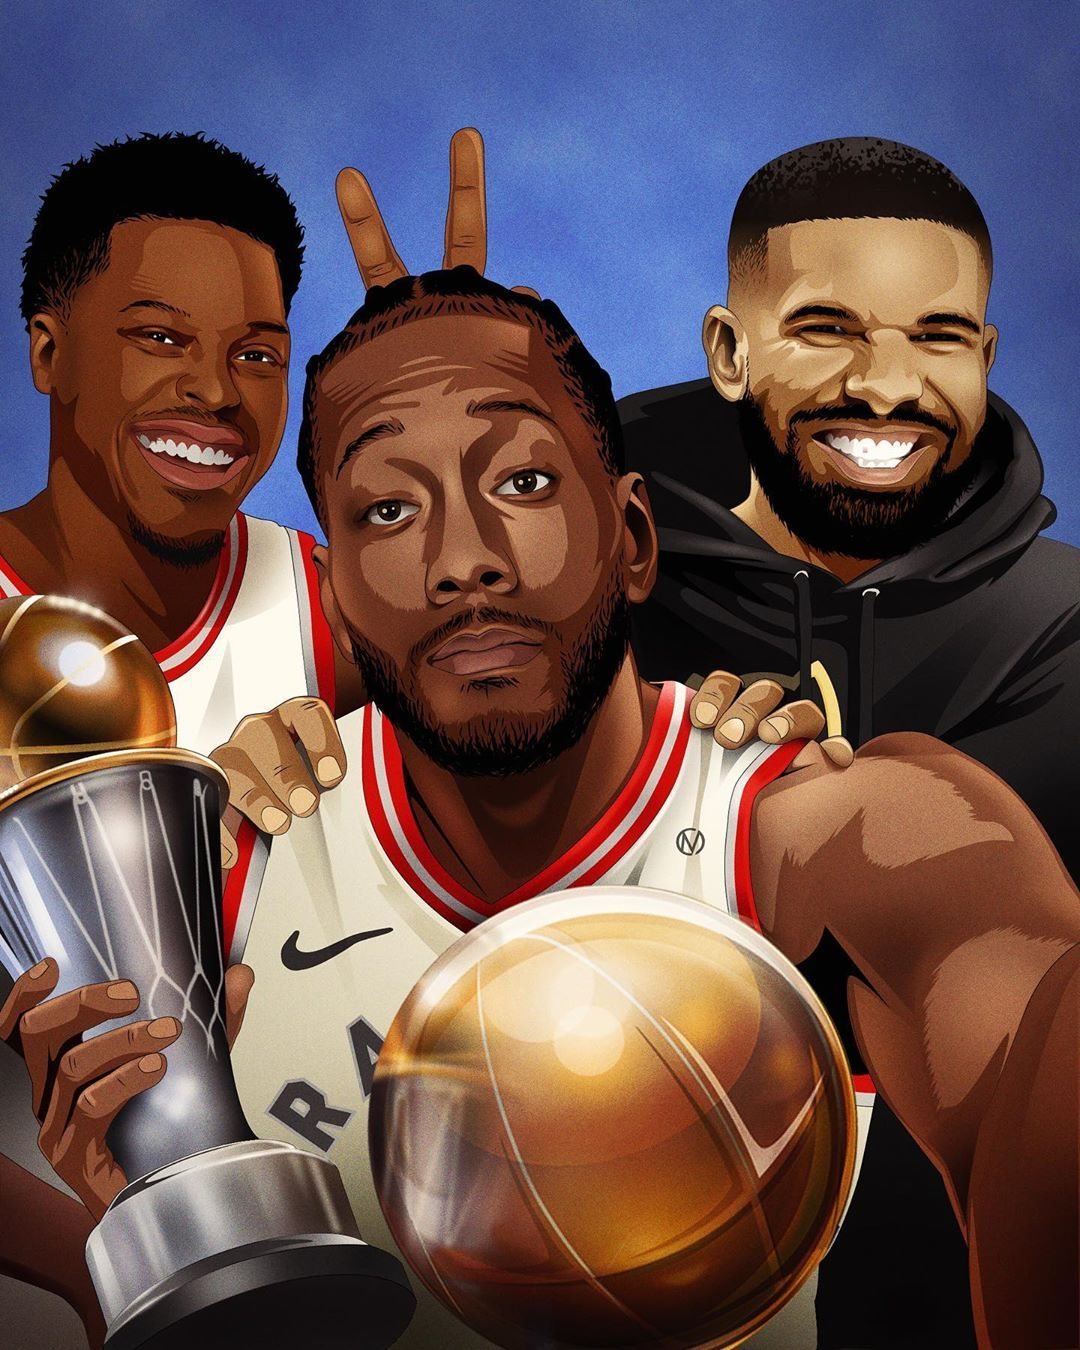 Christopher Mineses No Instagram Fun Times In The 6ix Congrats To The Nba Champion Toronto Raptors Nba Champions Toronto Raptors Toronto Raptors Basketball